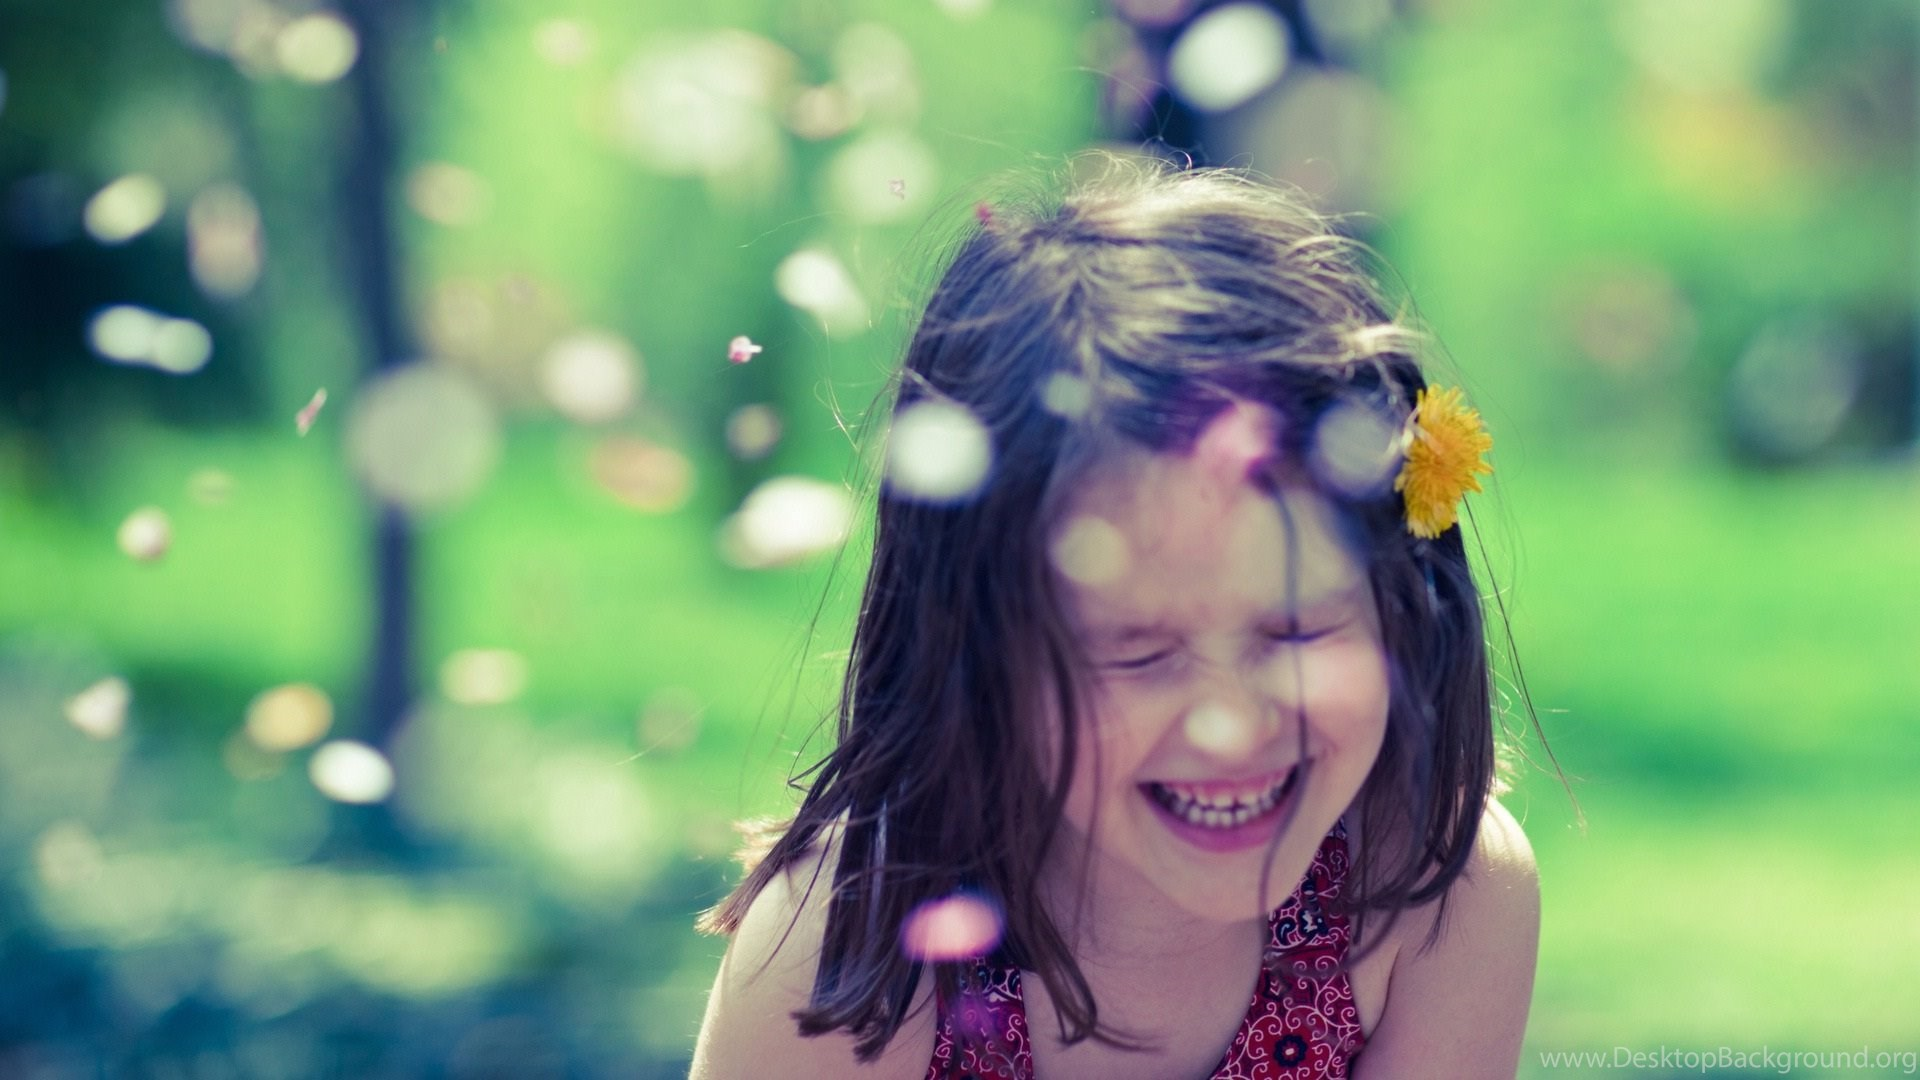 Very happy girl innocent smile new hd wallpapernew hd - Cute little girl pic hd ...